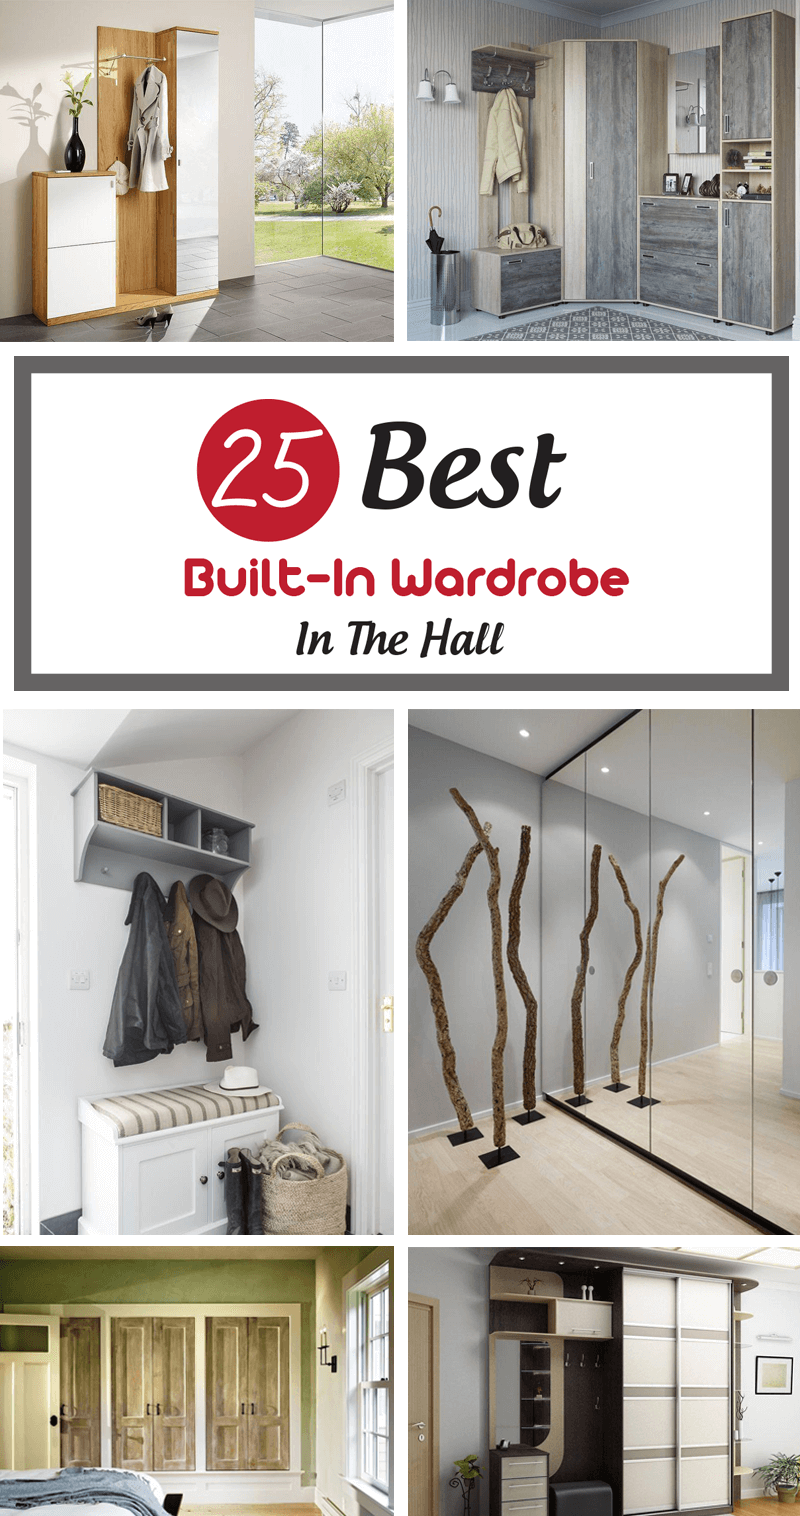 built in wardrobe in the hall